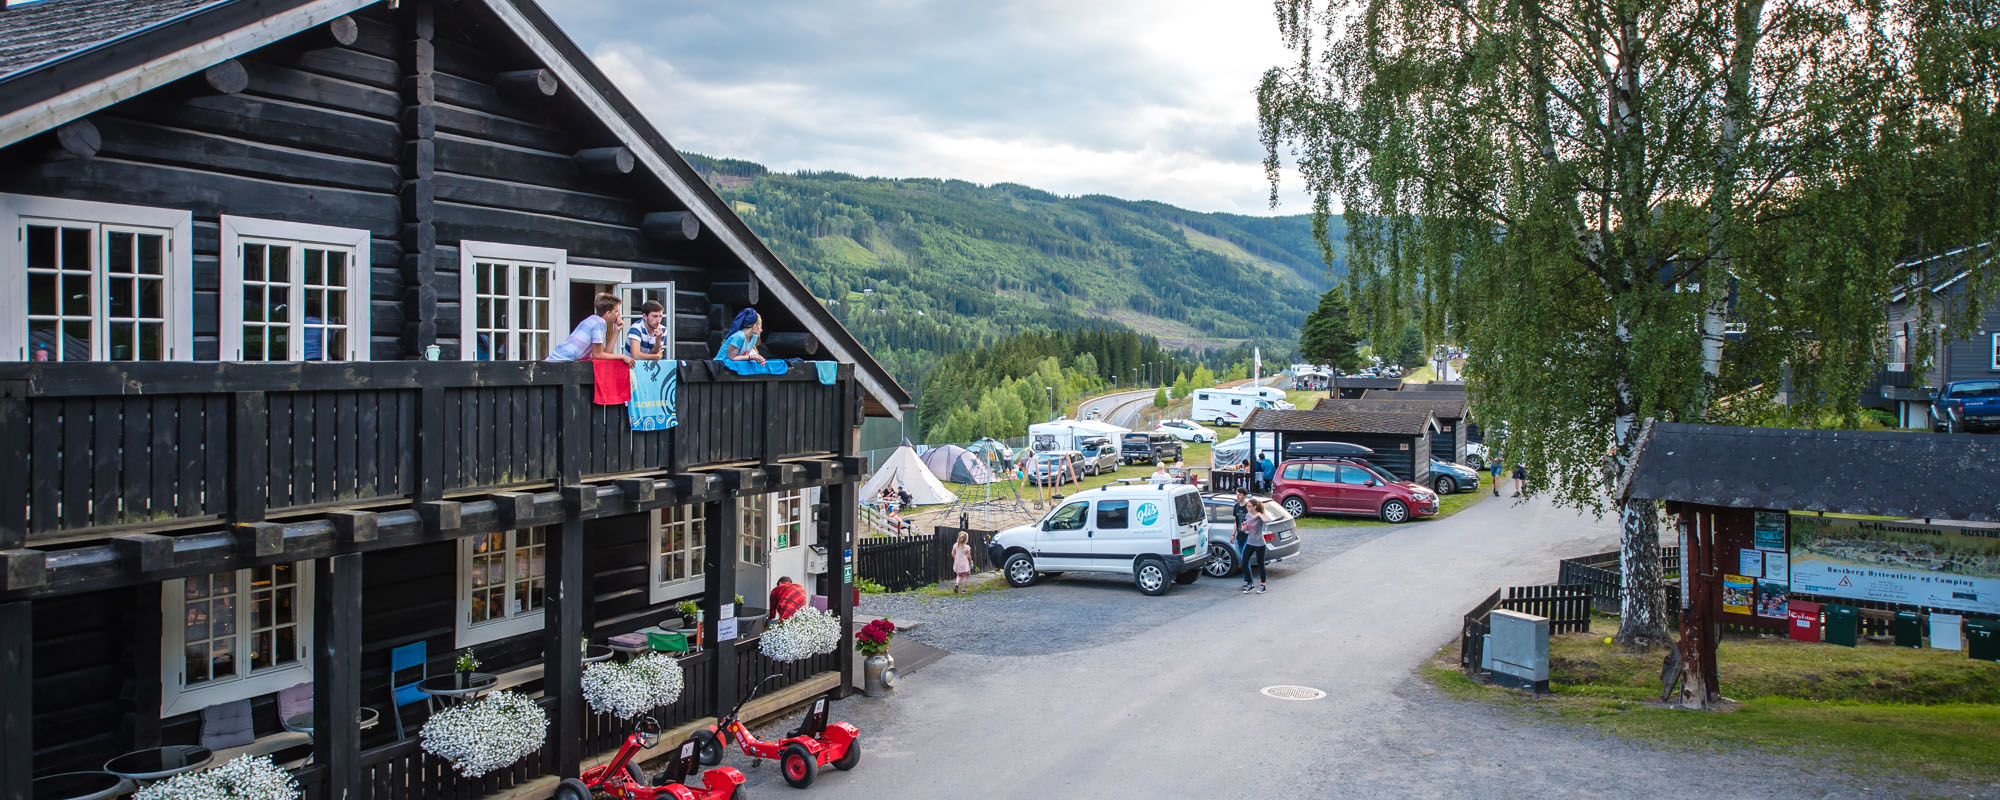 Pluscamp Rustberg Camping